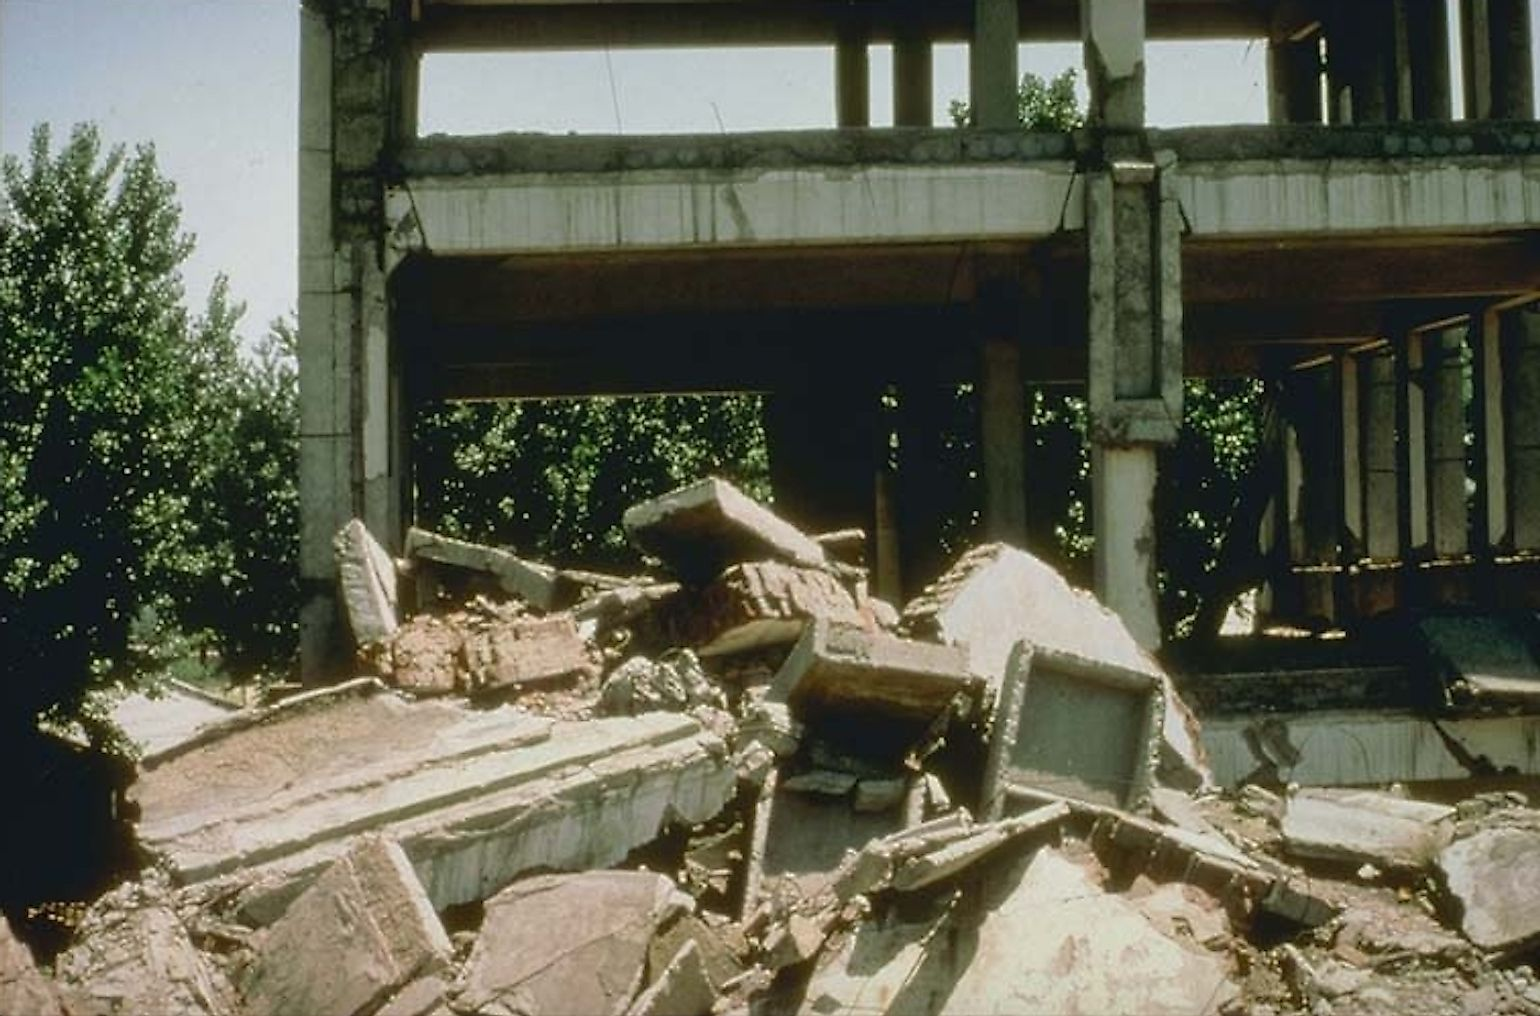 1976 Tangshan earthquake site. Image credit: The National Oceanic and Atmospheric Administration/Public domain